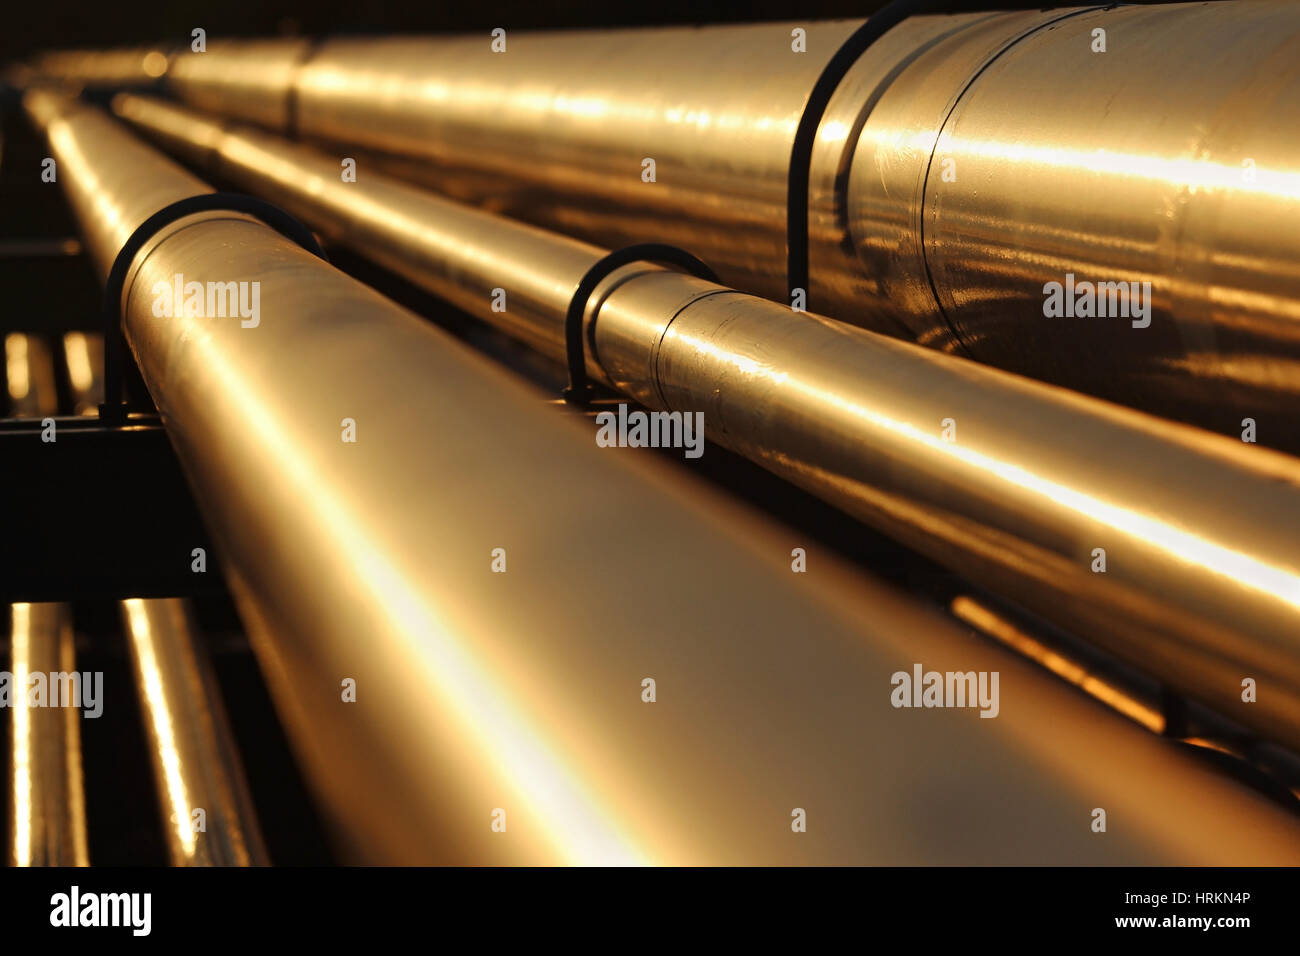 golden steel pipe line conection in crude oil factory - Stock Image